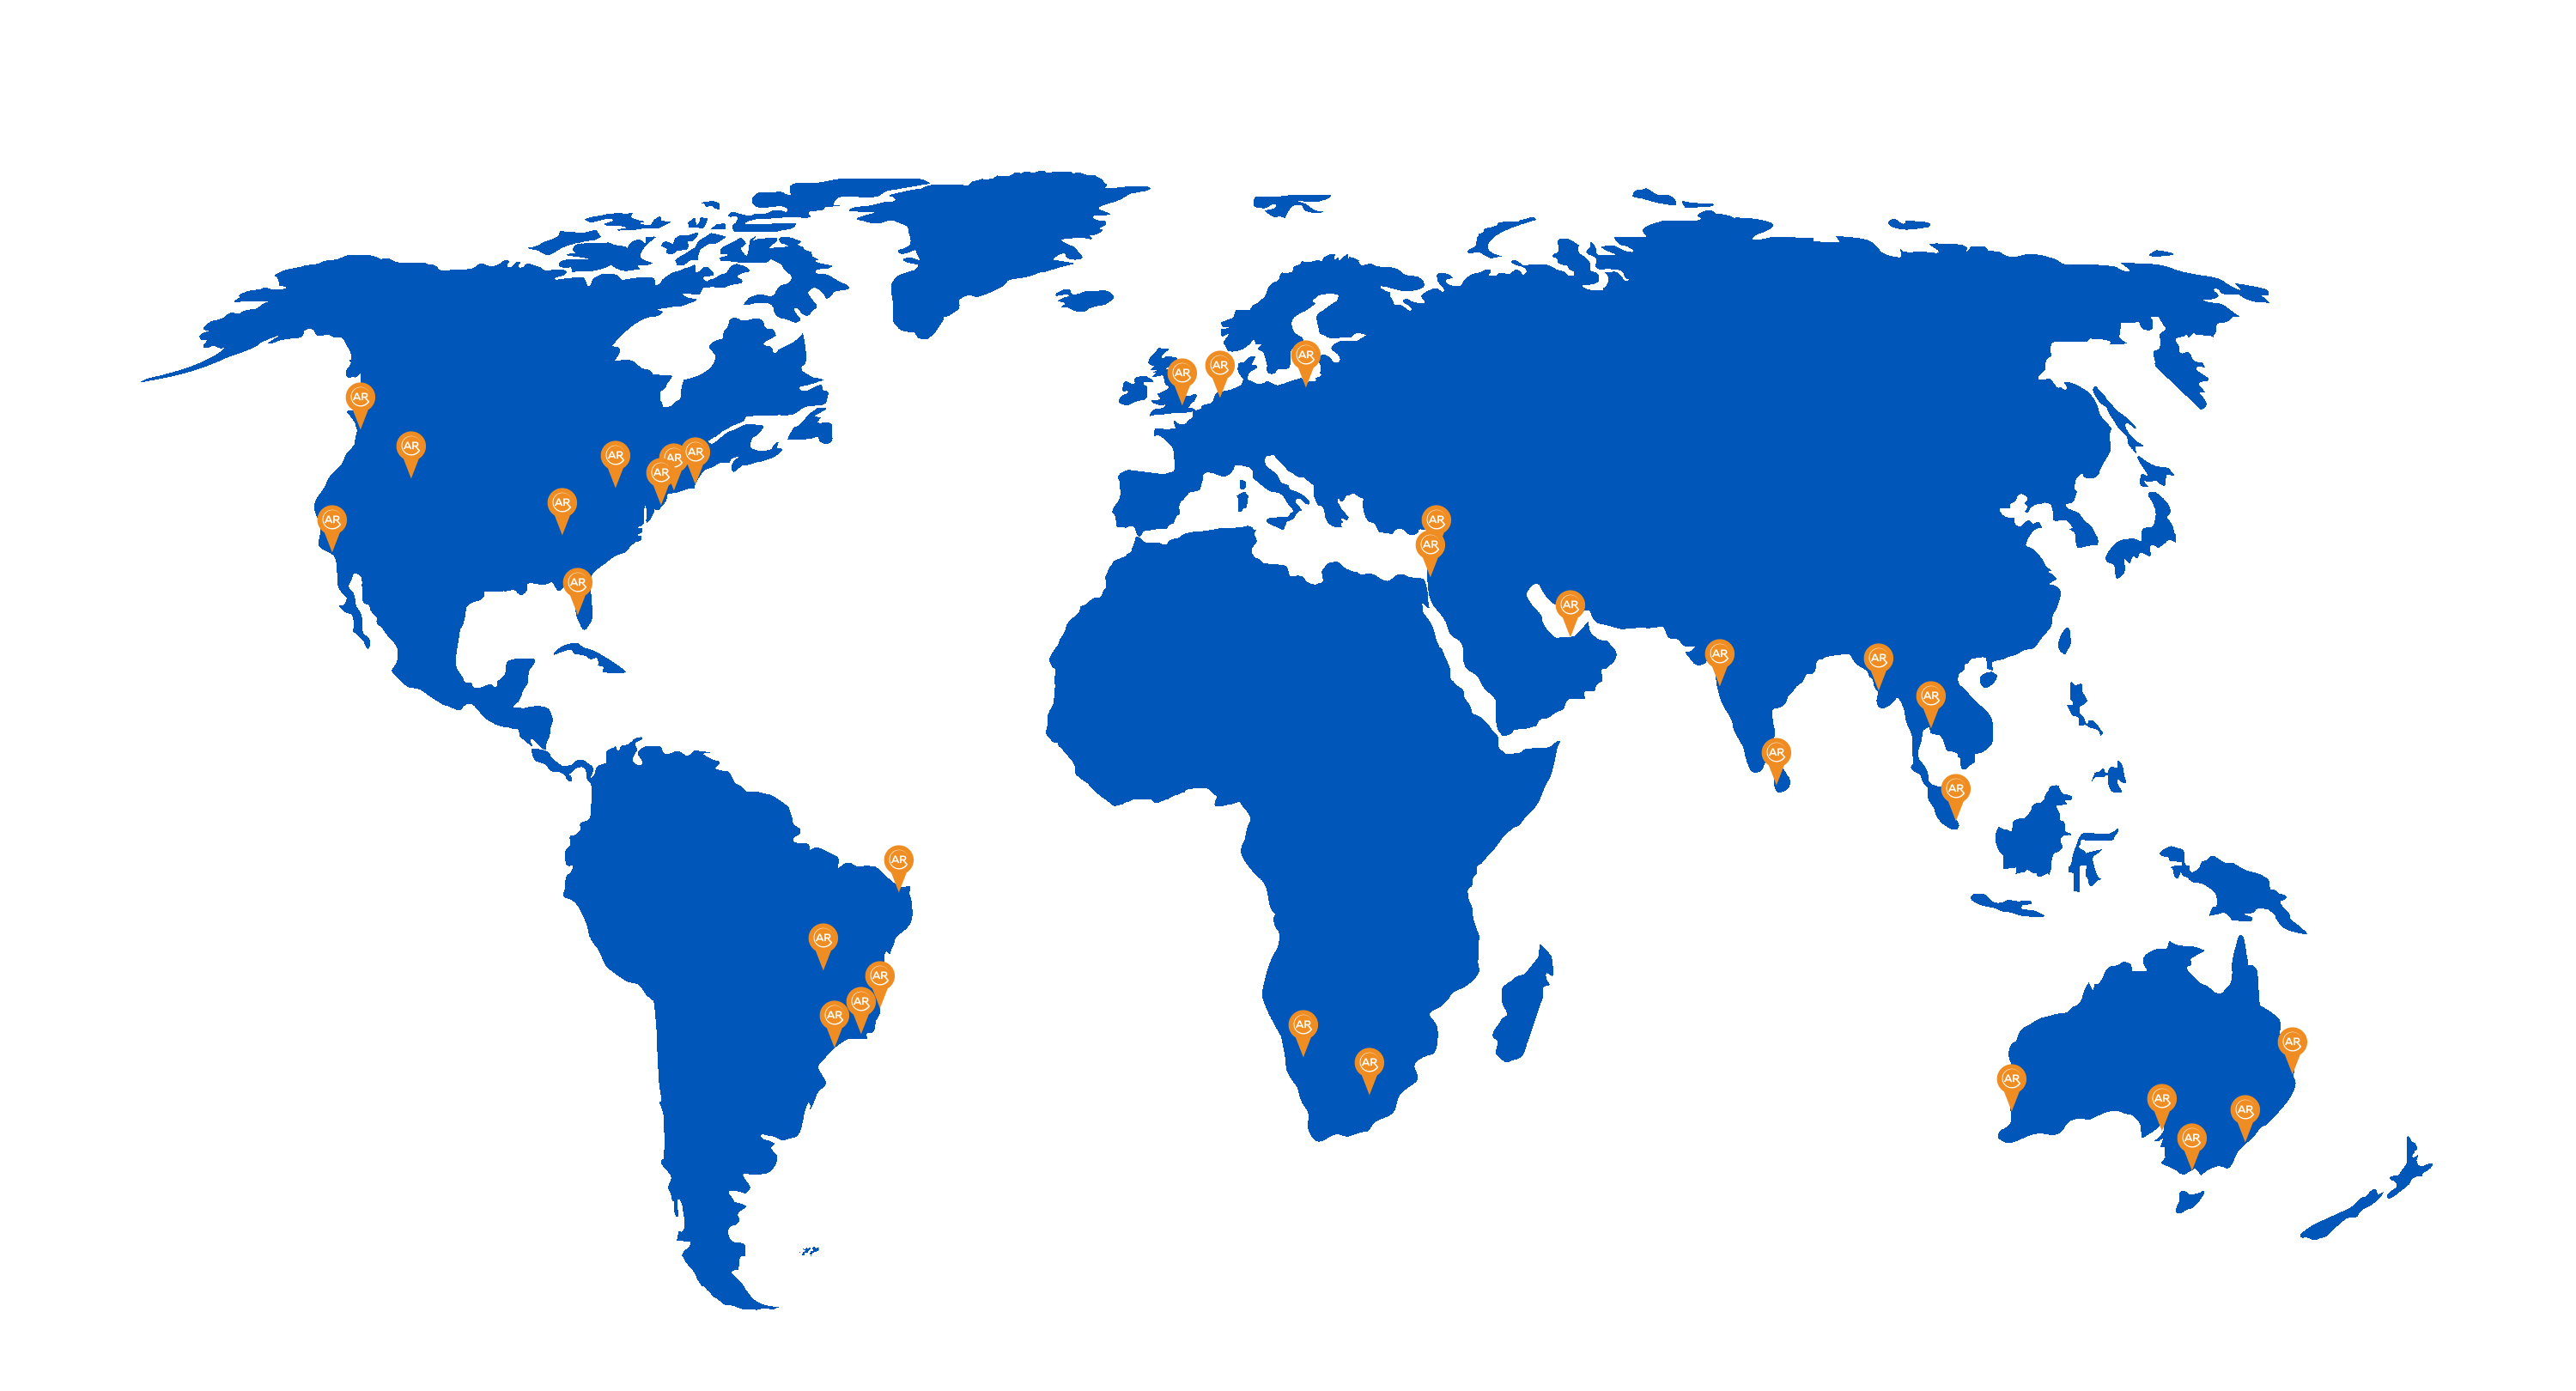 Partner Program Map